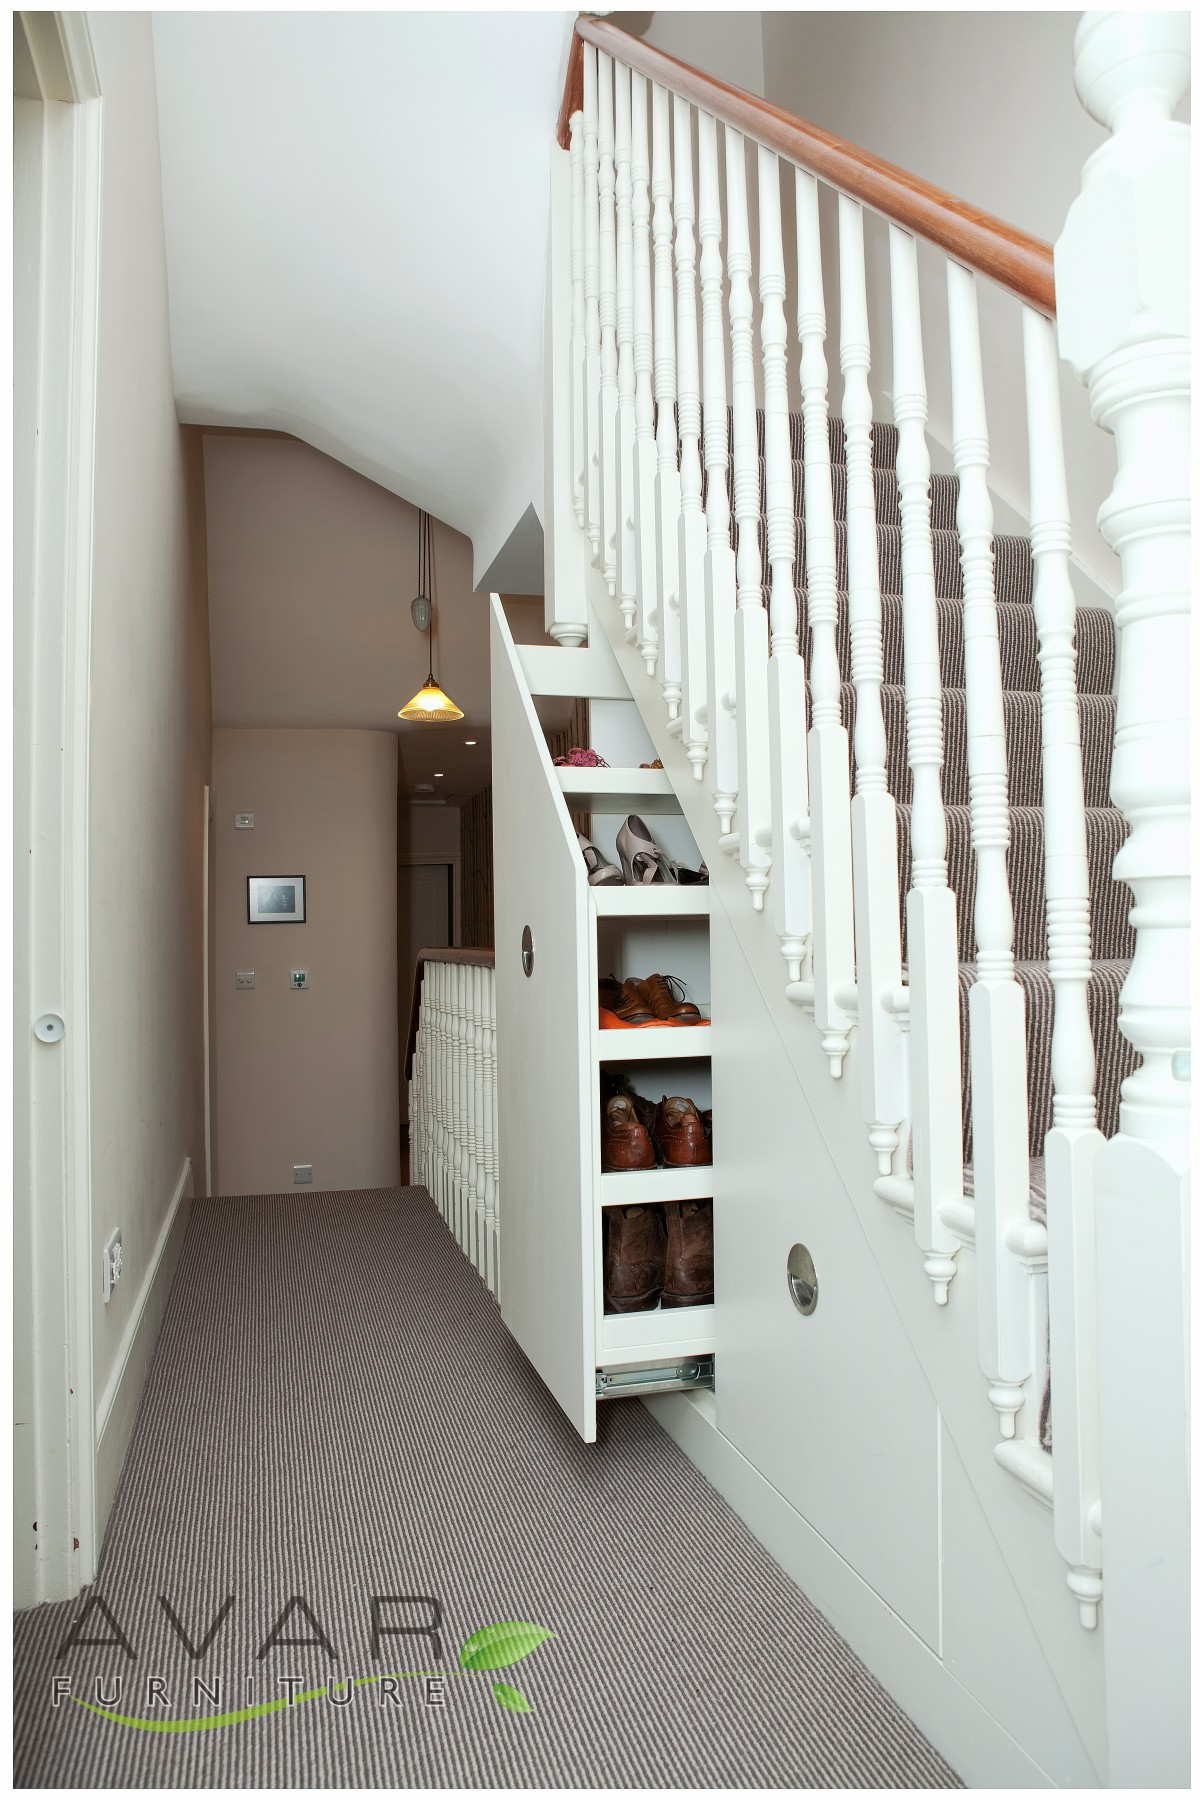 Under stairs storage ideas gallery 14 north london for Under stairs drawers plans